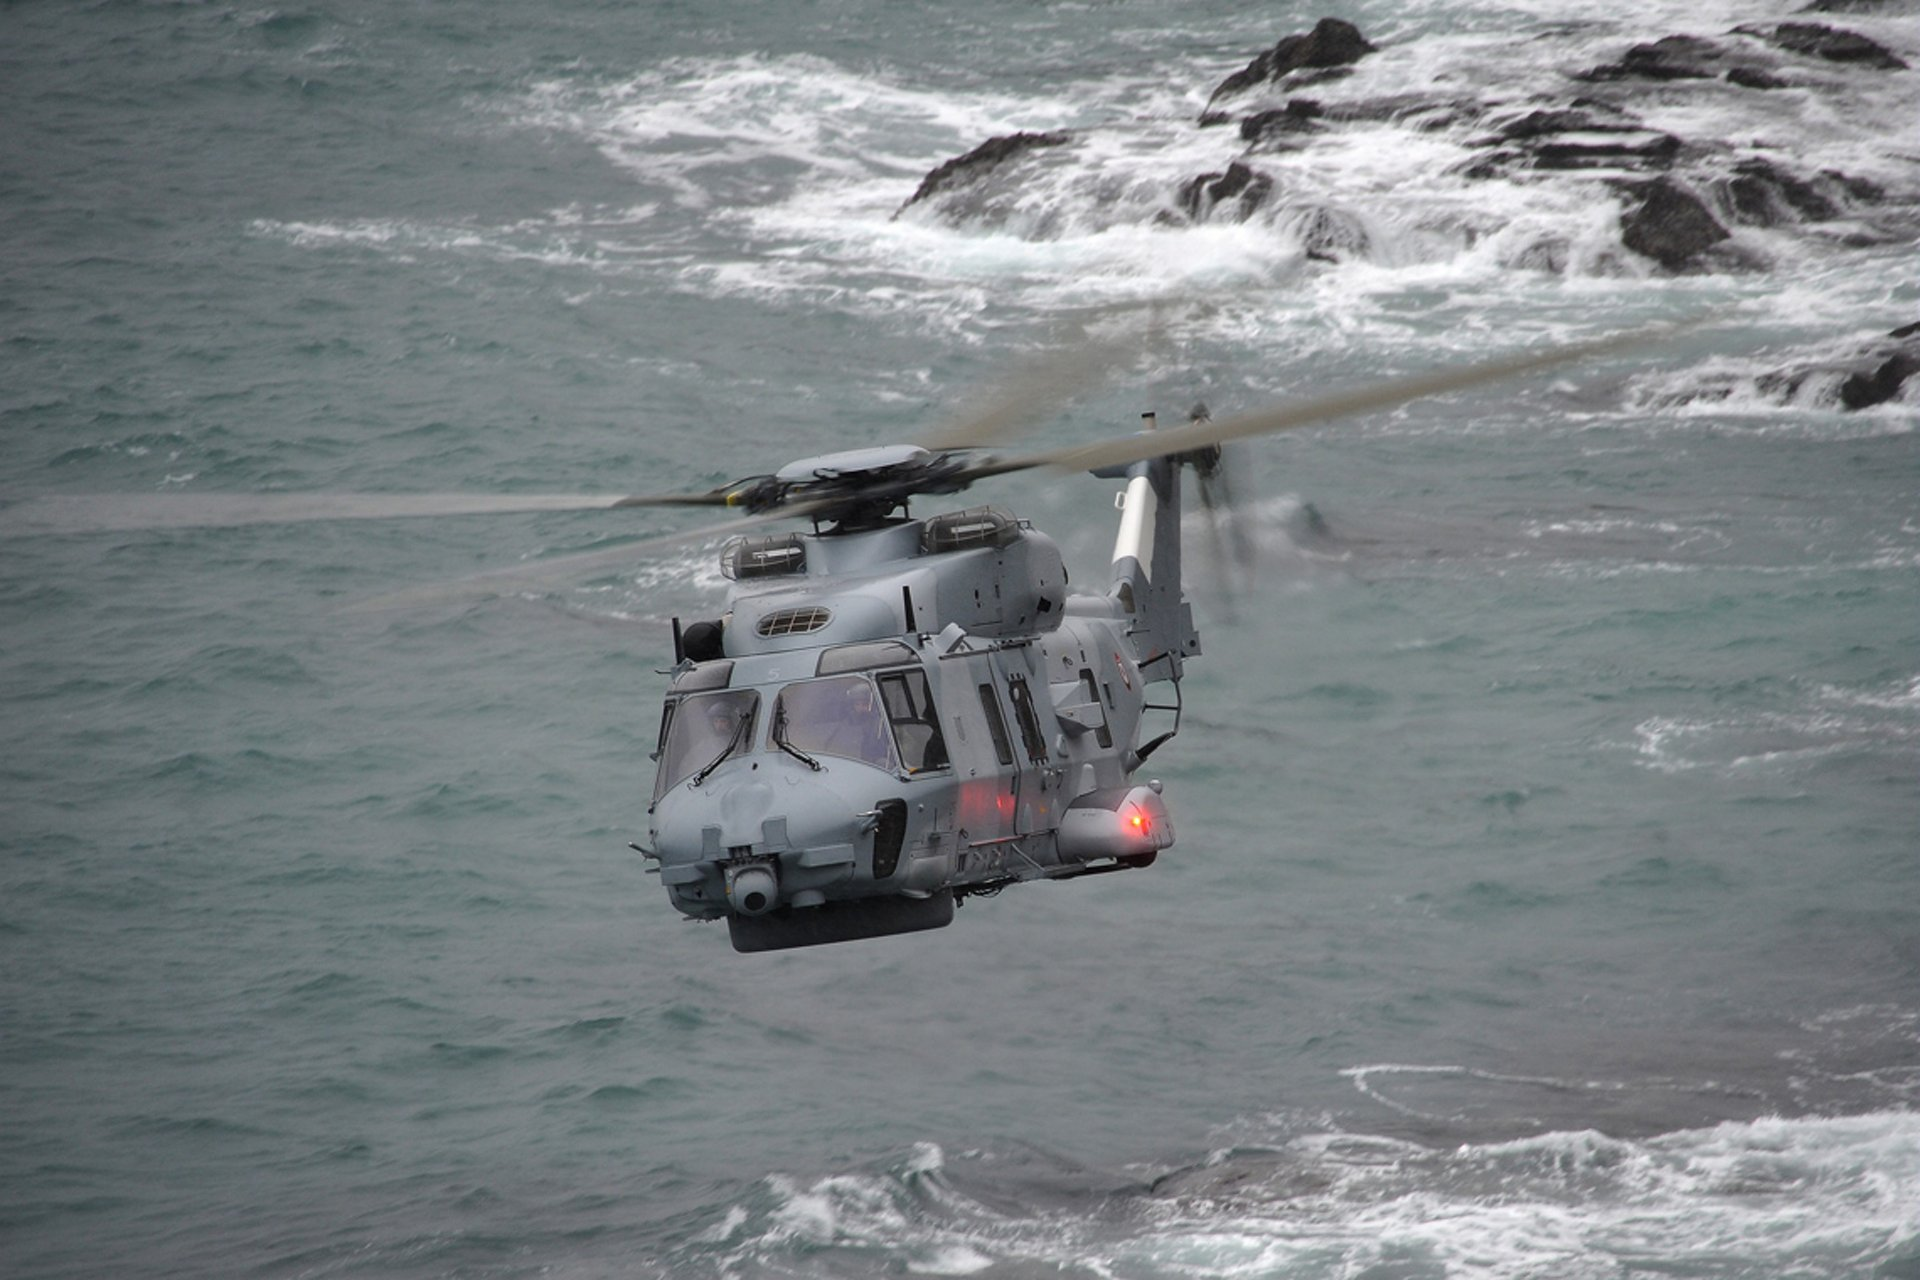 Head-on view of an NH90 NFH military helicopter flying over a coastal area.